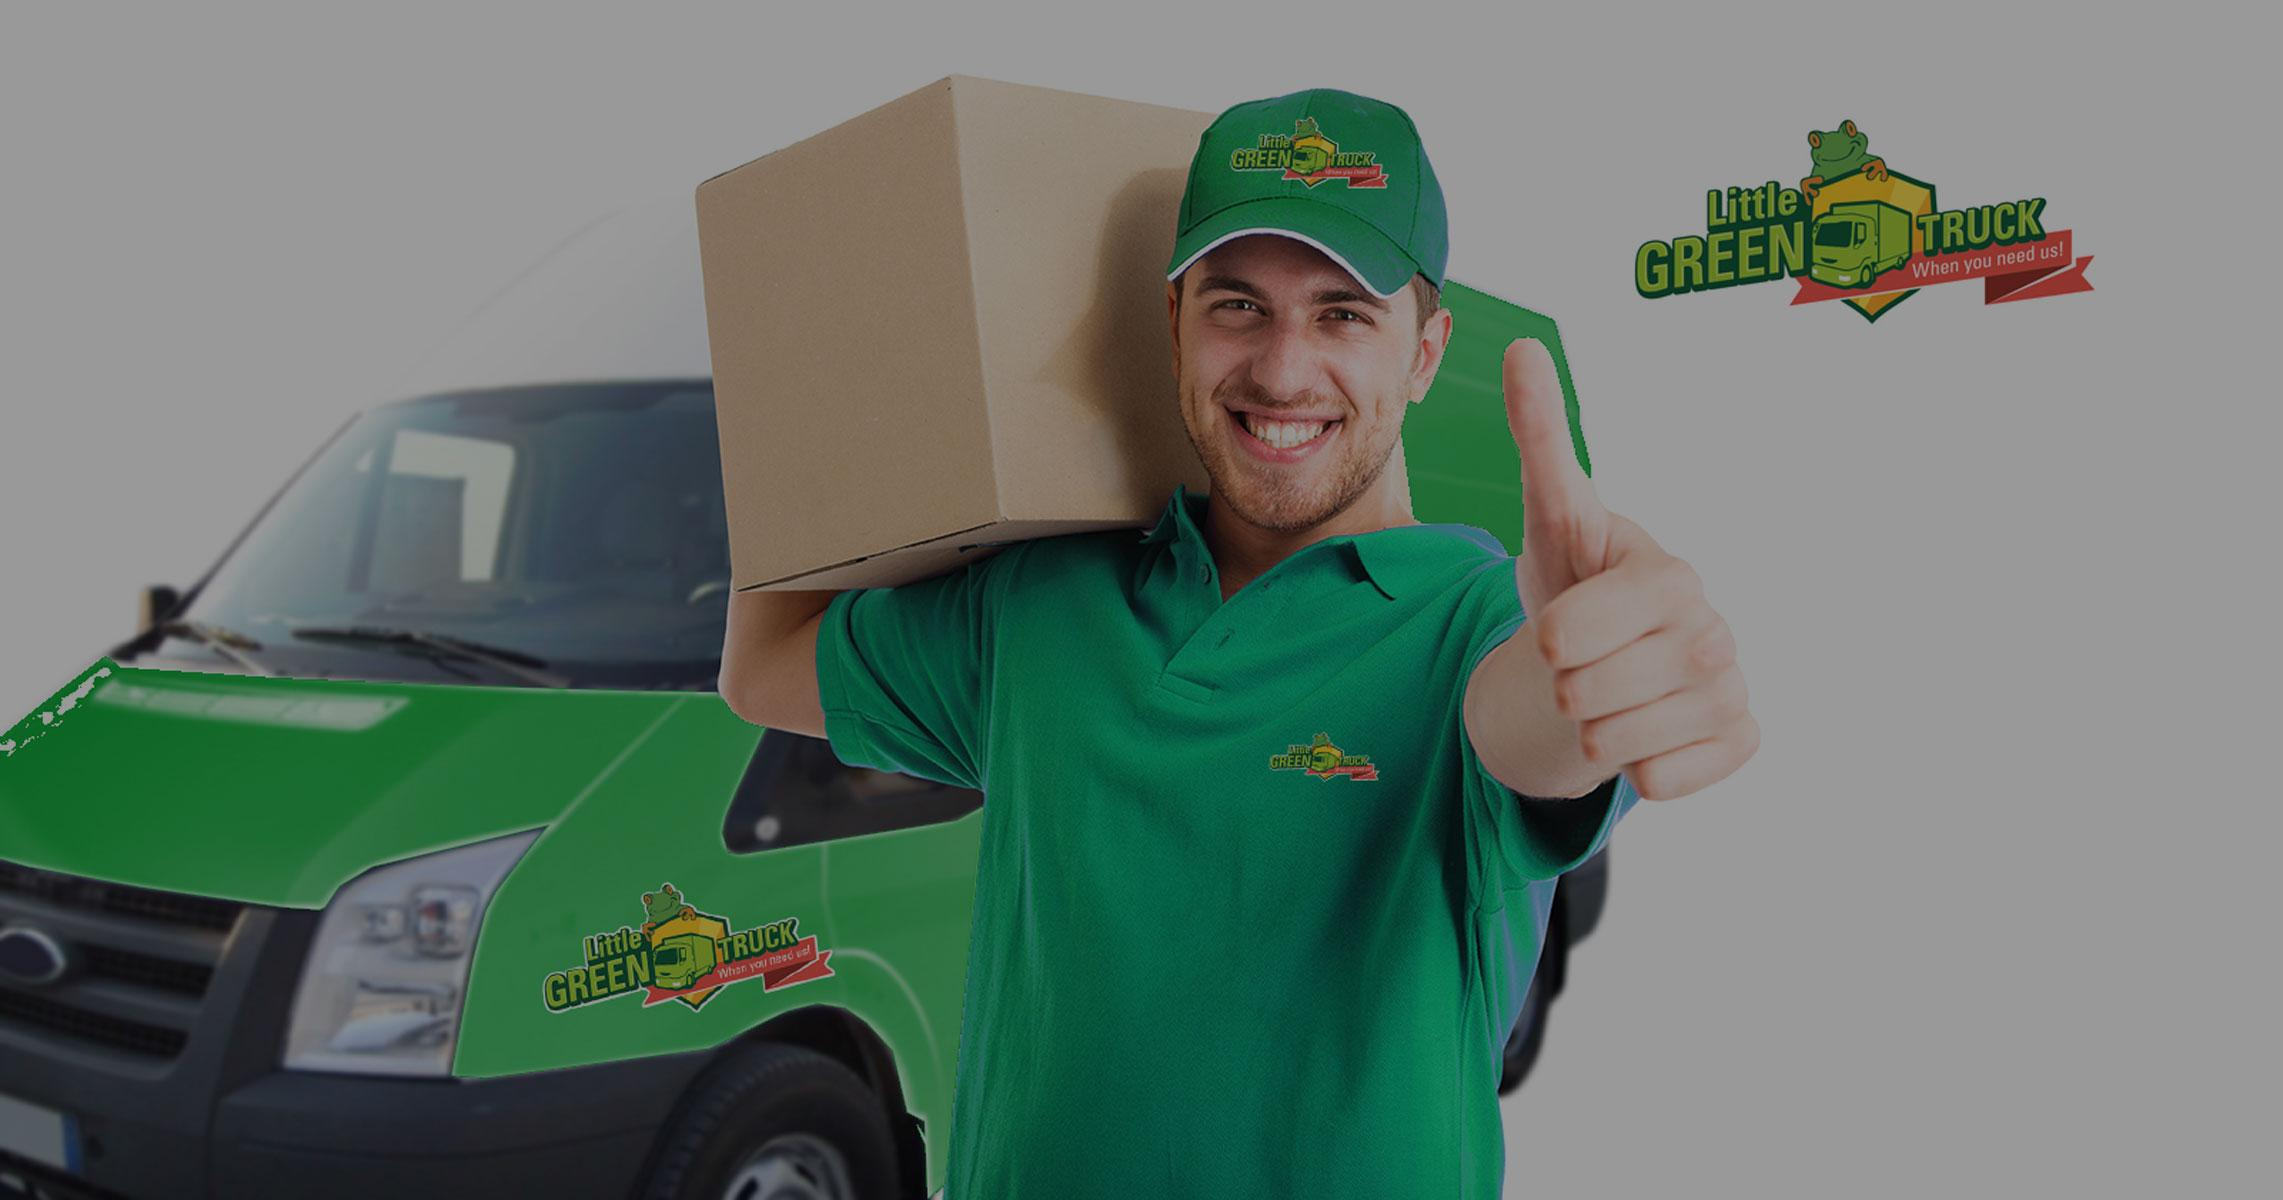 Little Green Truck - Man doing thumbs up while carrying a box